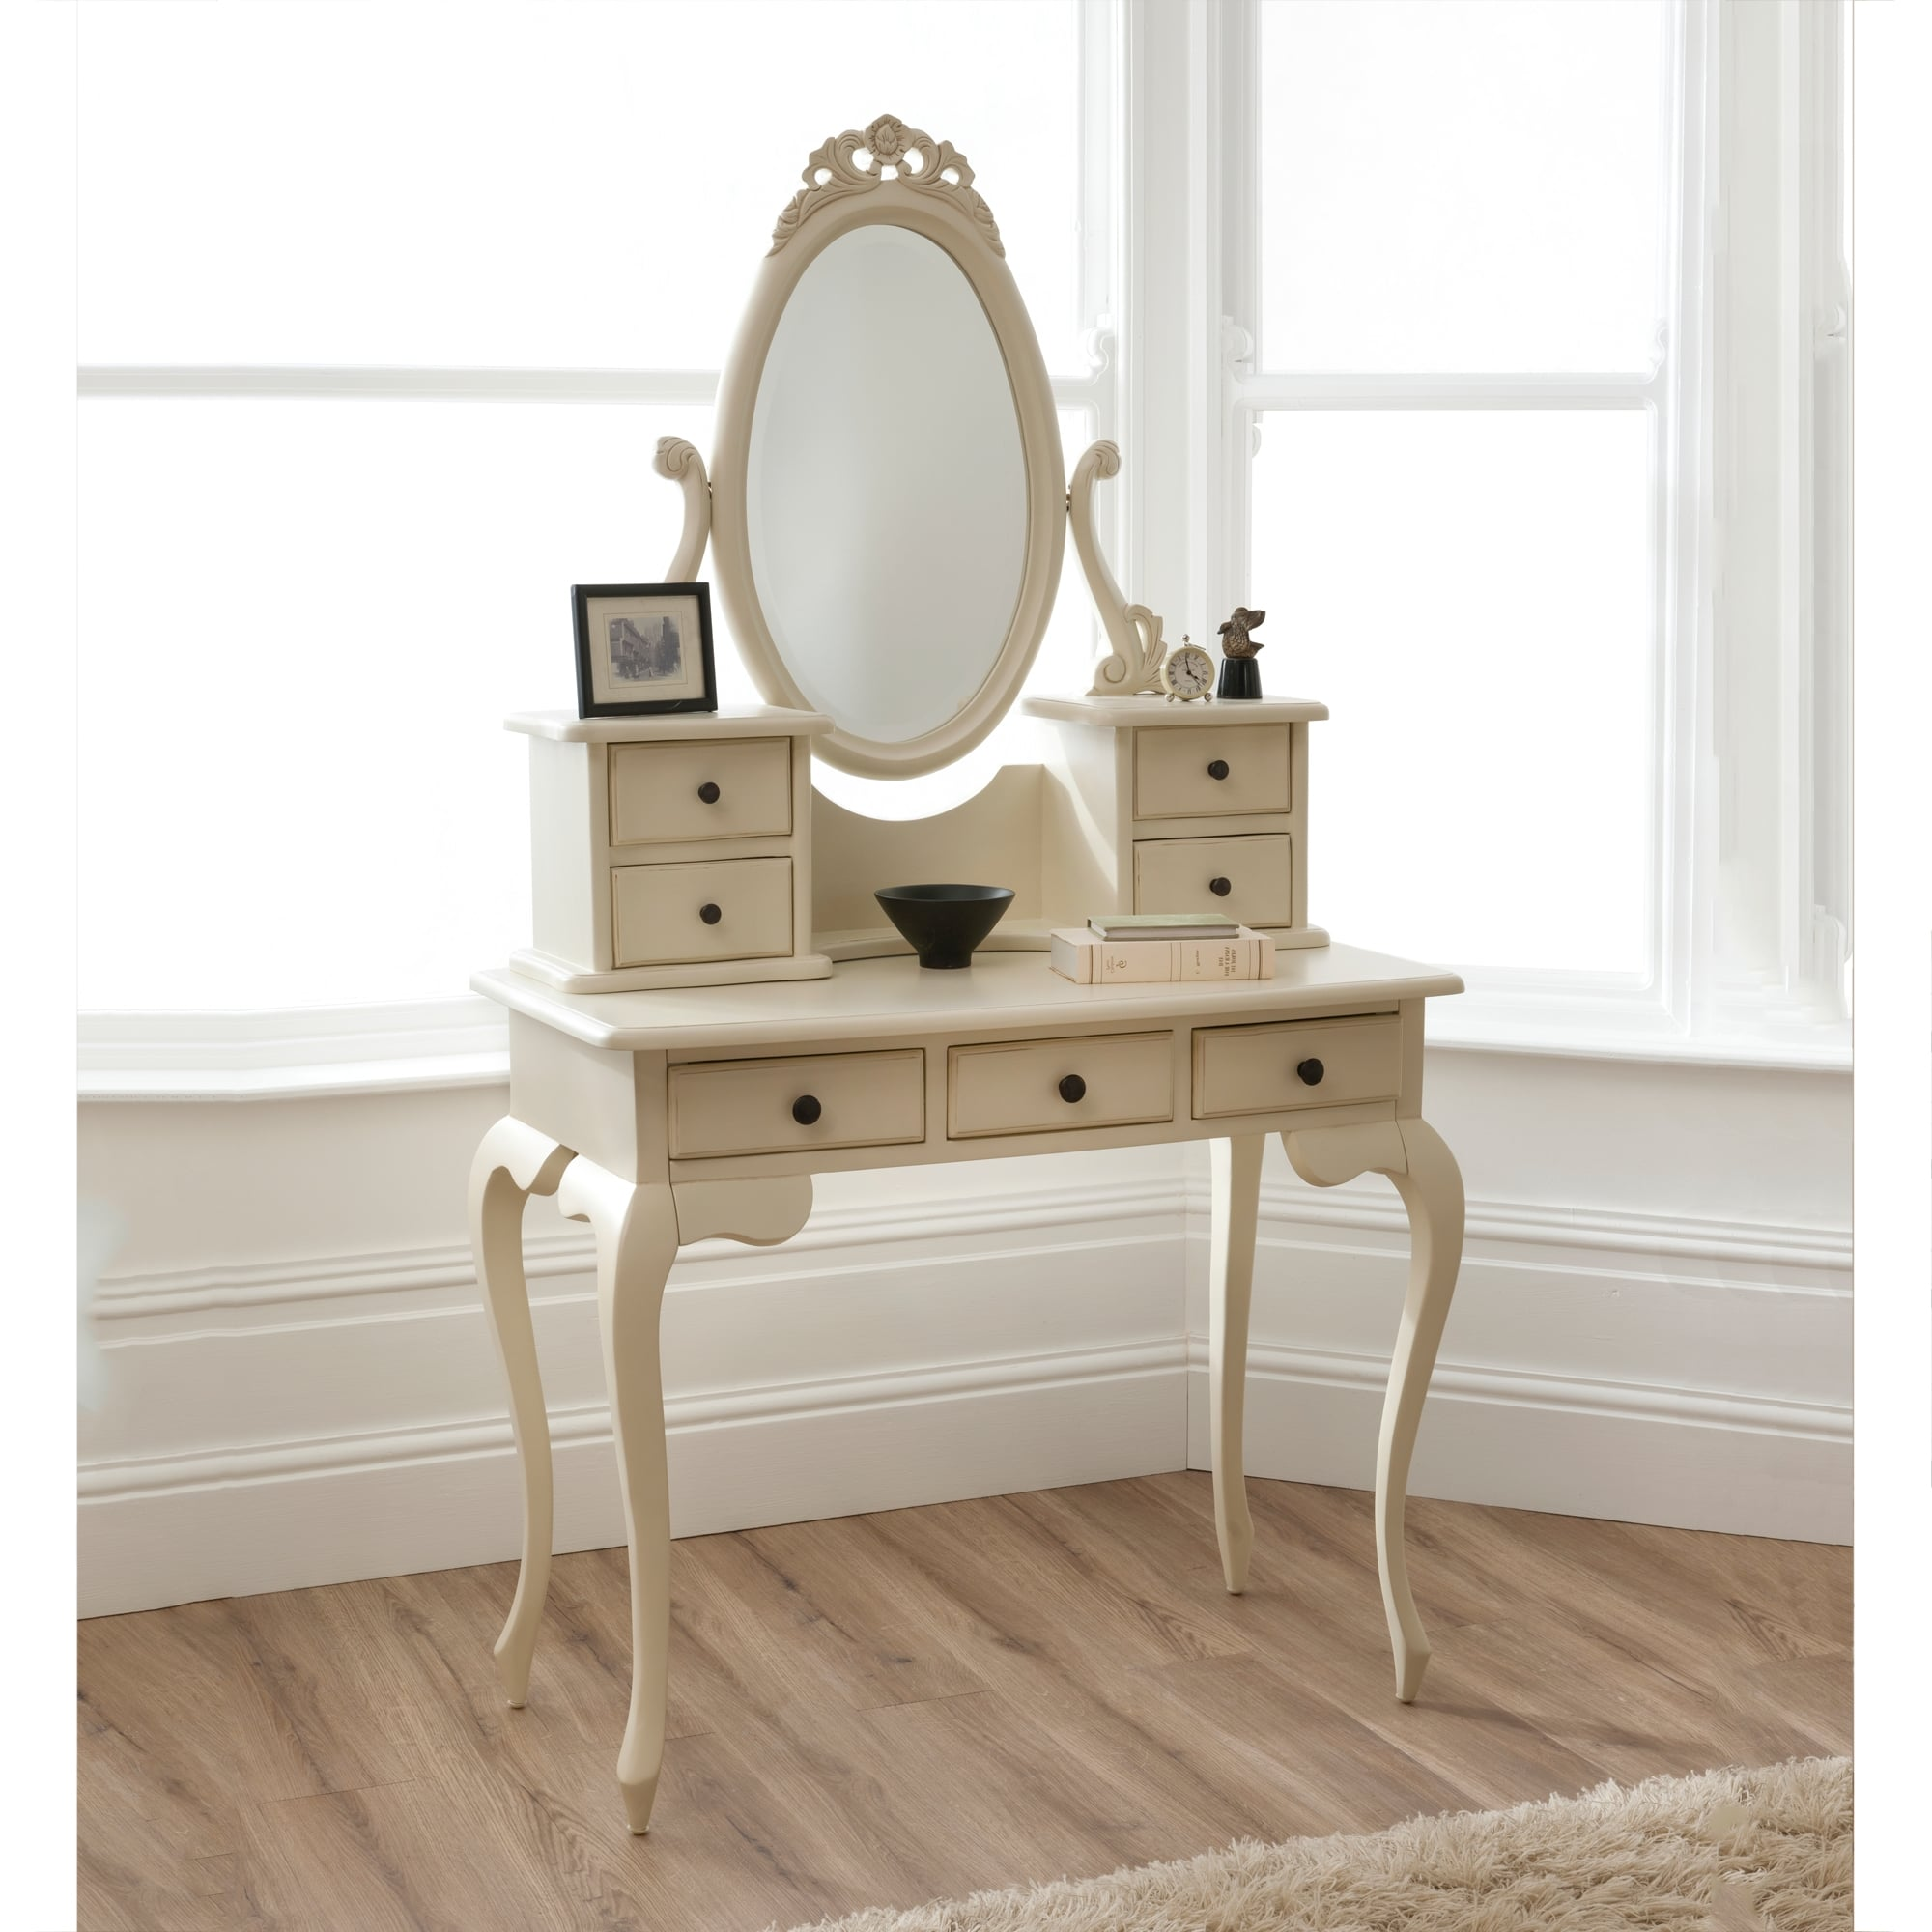 bordeaux ivory shabby chic dressing table shabby chic. Black Bedroom Furniture Sets. Home Design Ideas